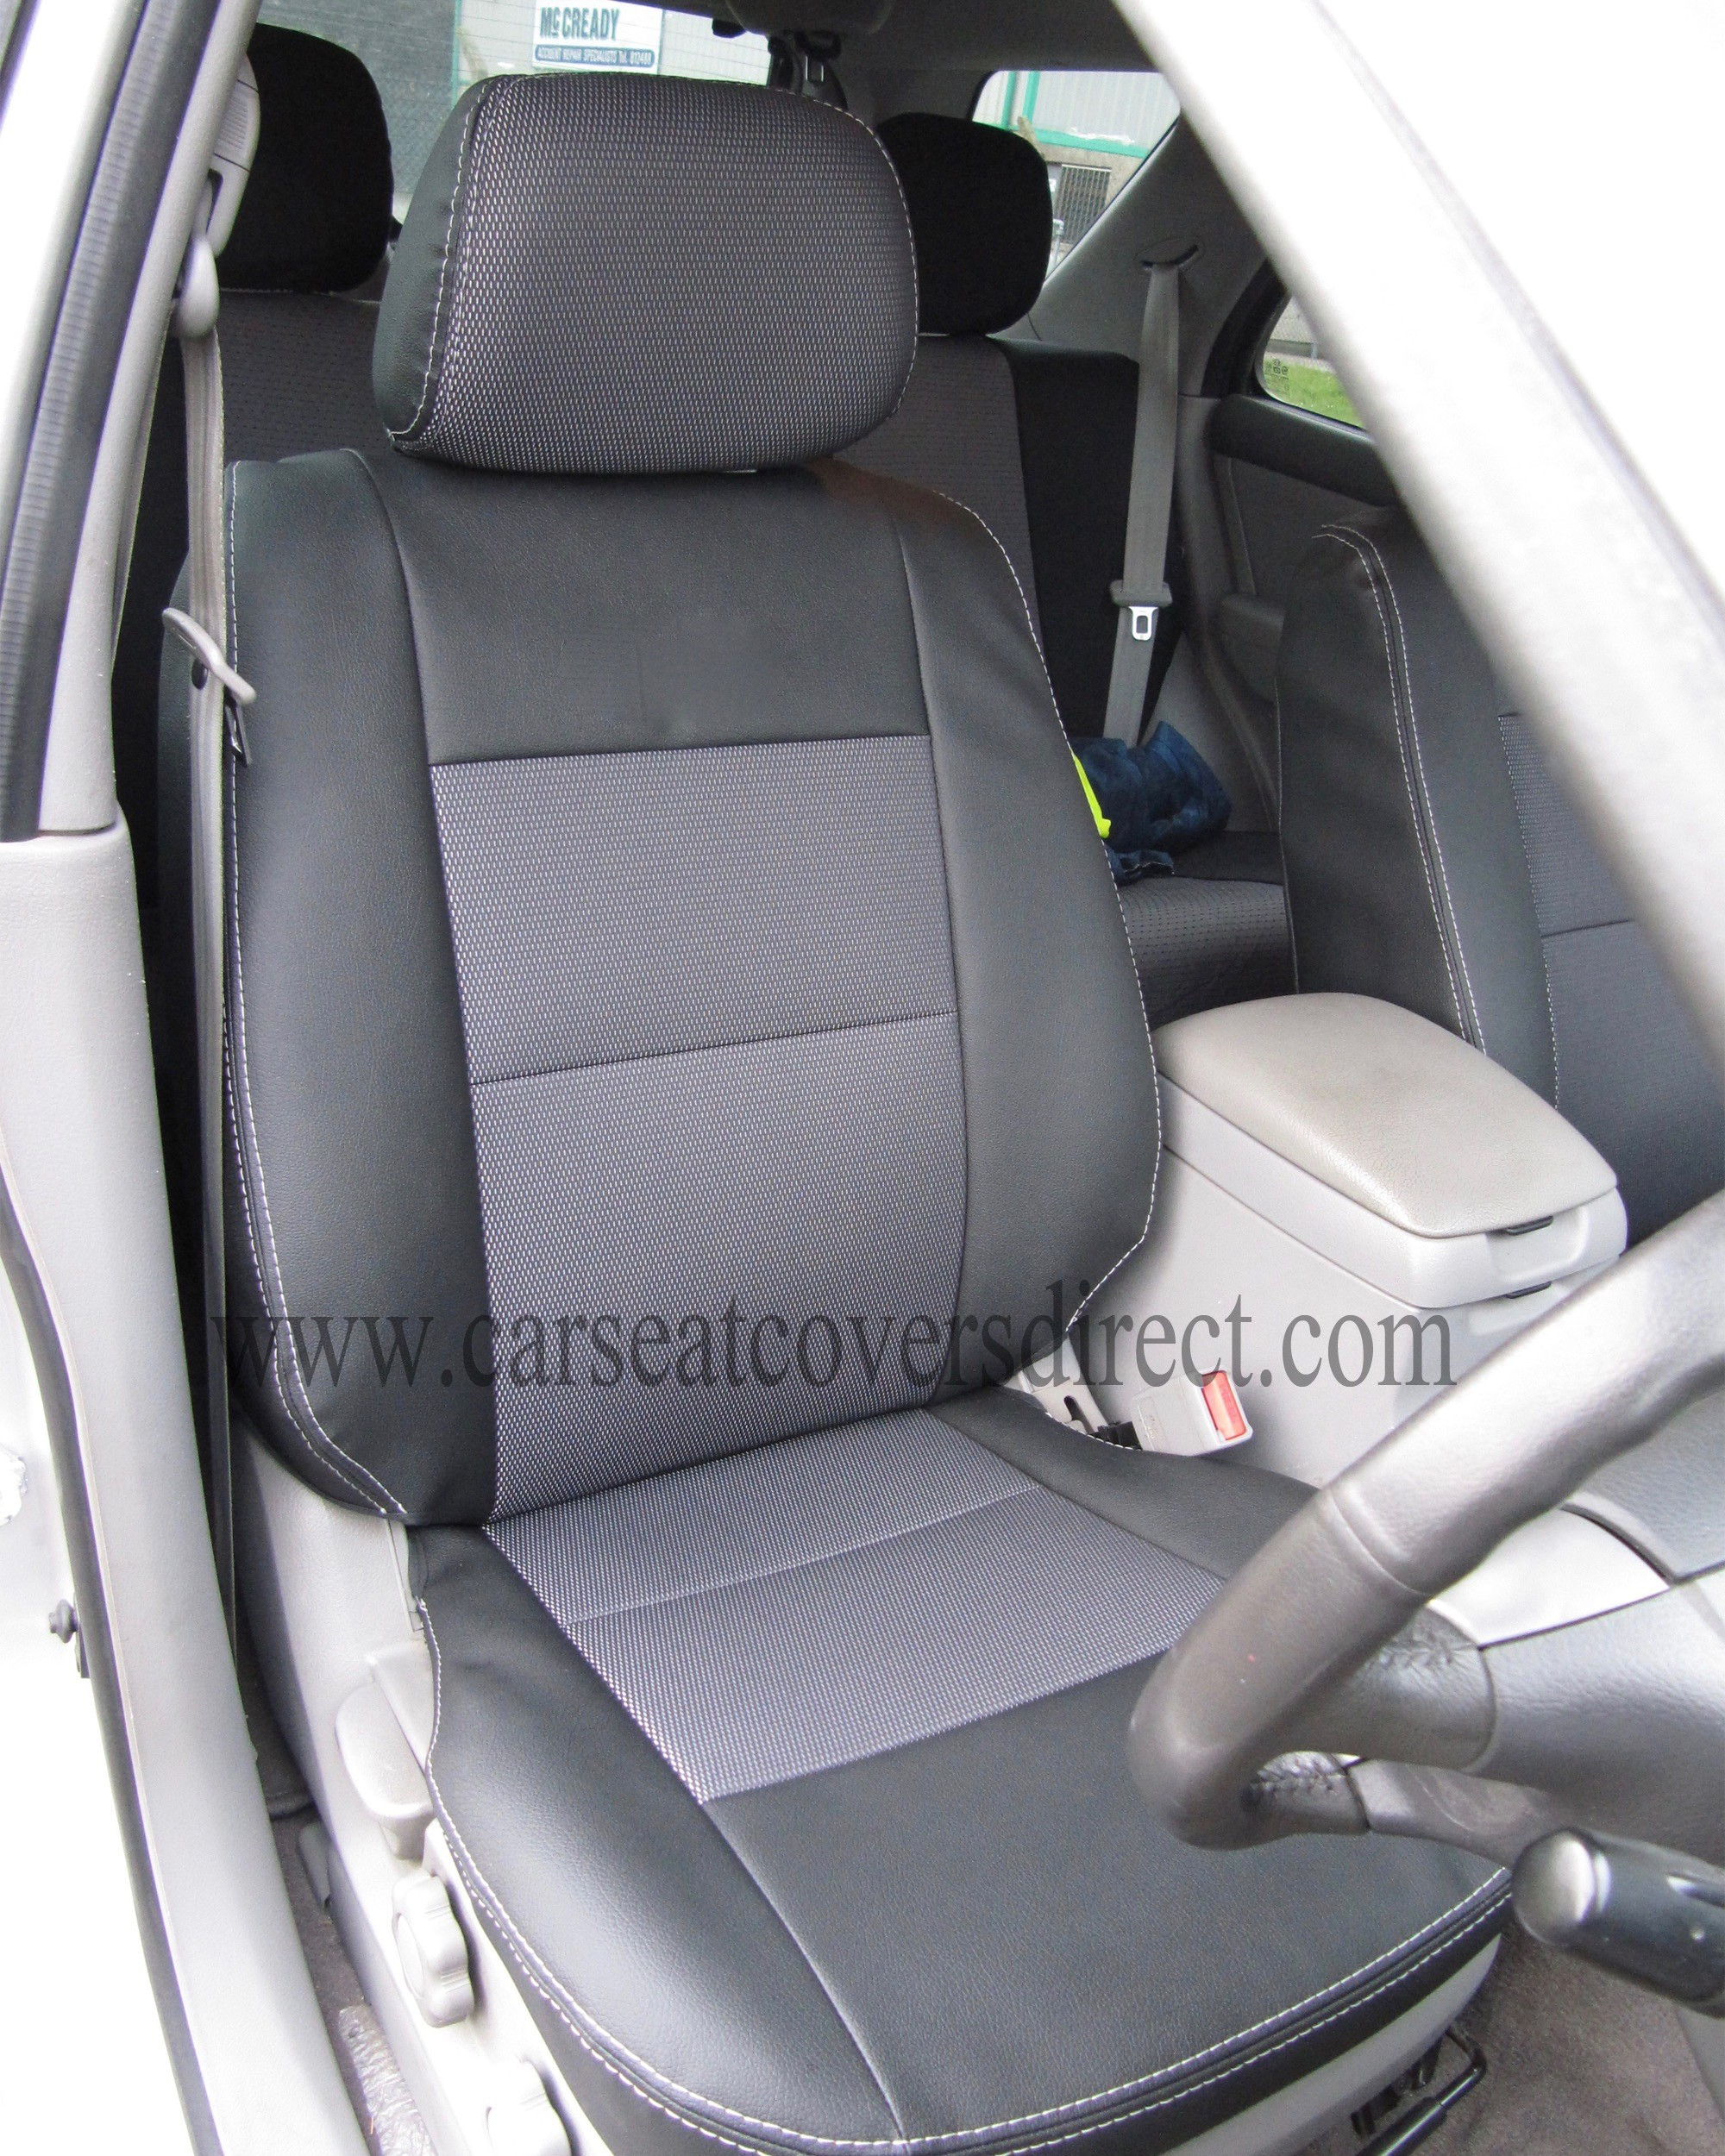 KIA SORENTO seat covers